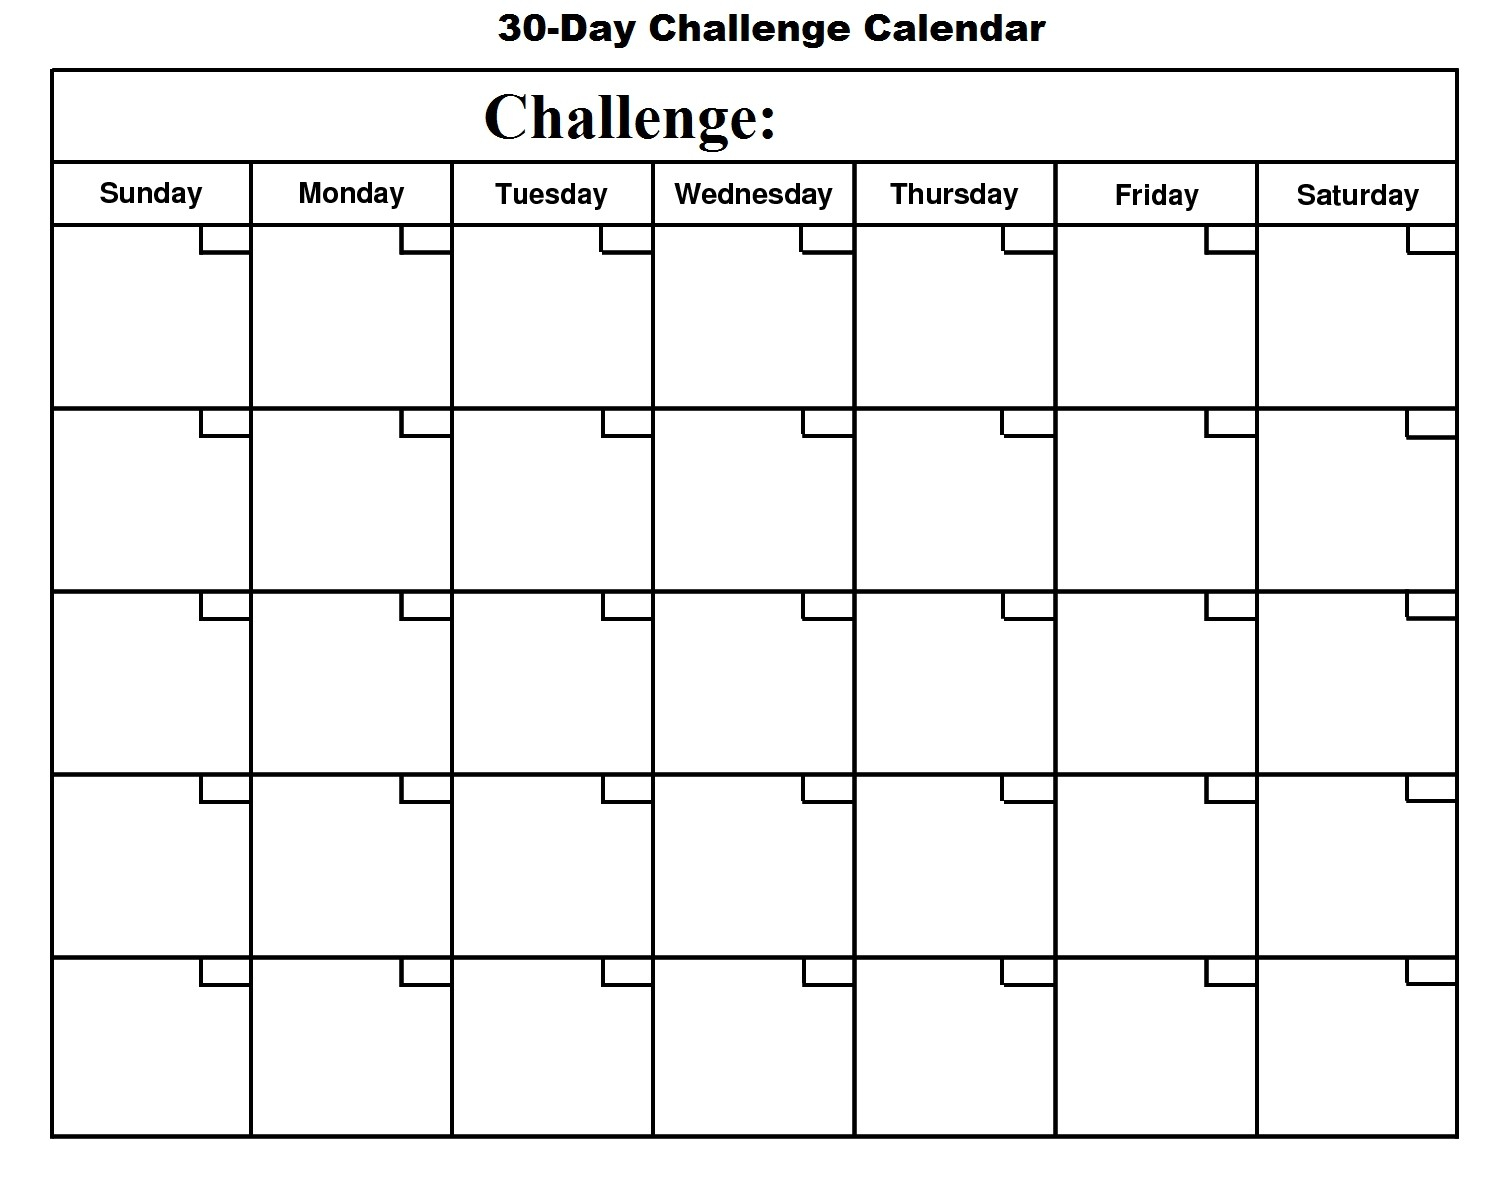 001 Printable Day Calendar Blank Template In Amazing 30 Ideas inside 60 Days Challenge Template Calender